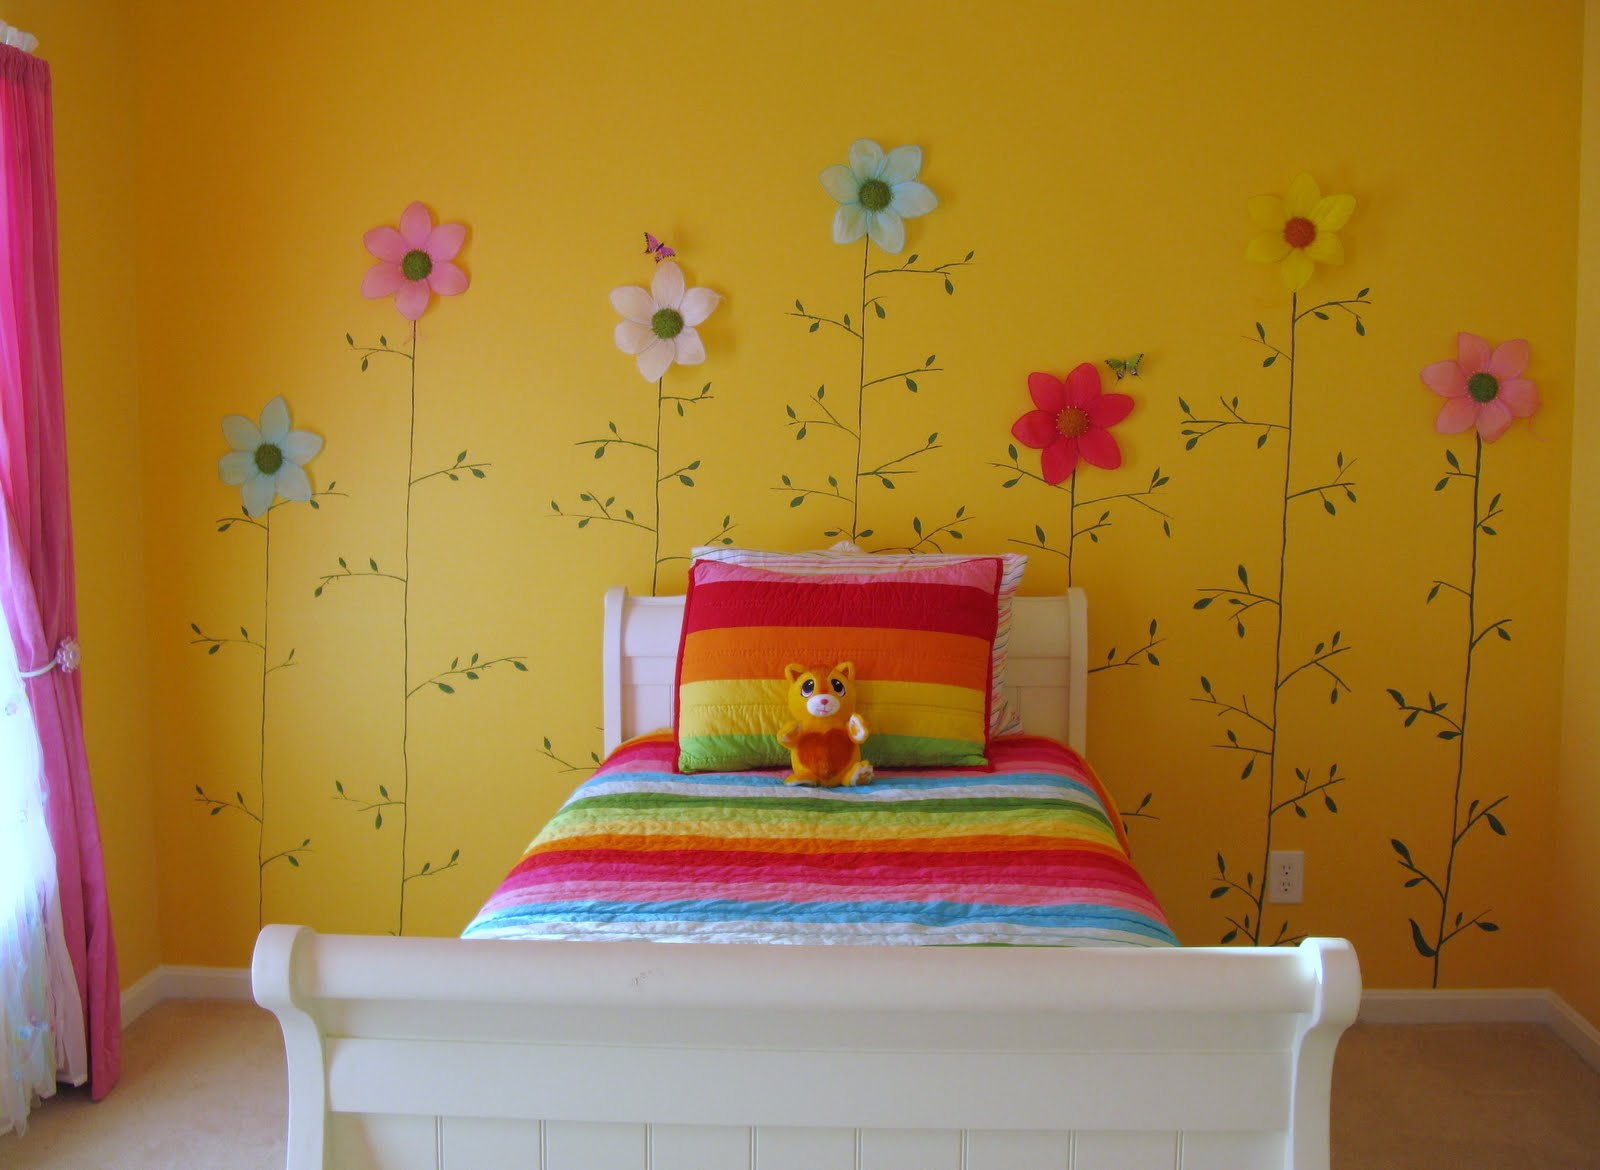 Decorating A Bedroom With A Flower Theme   4